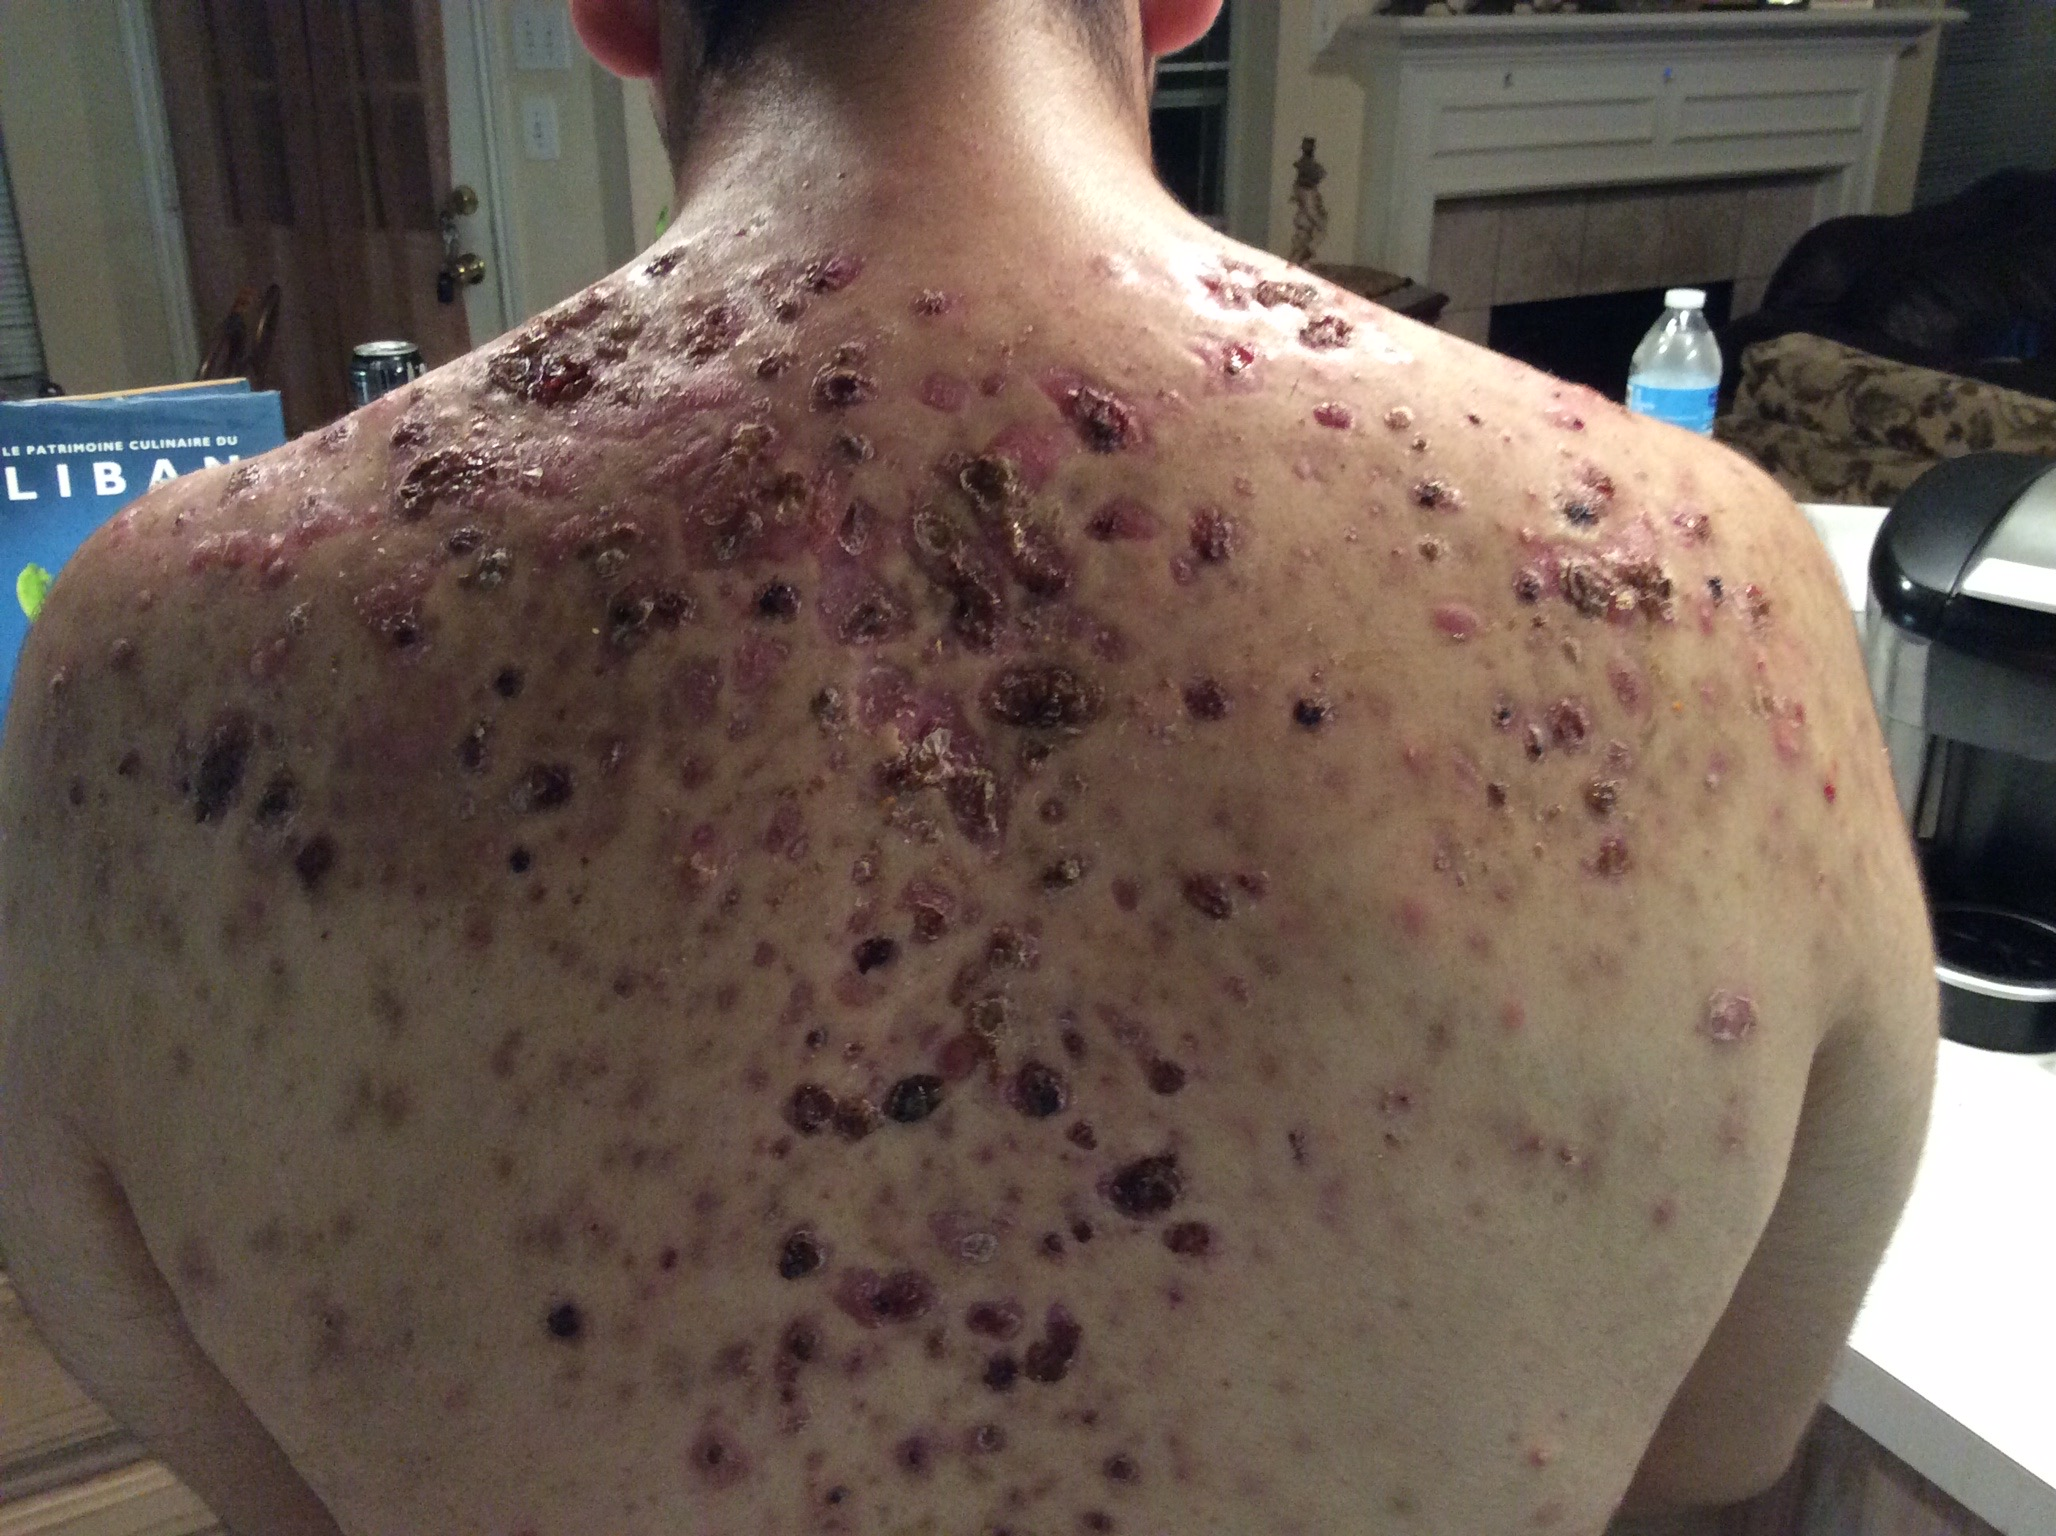 Severe nodular cystic acne, the full story - Back/Body